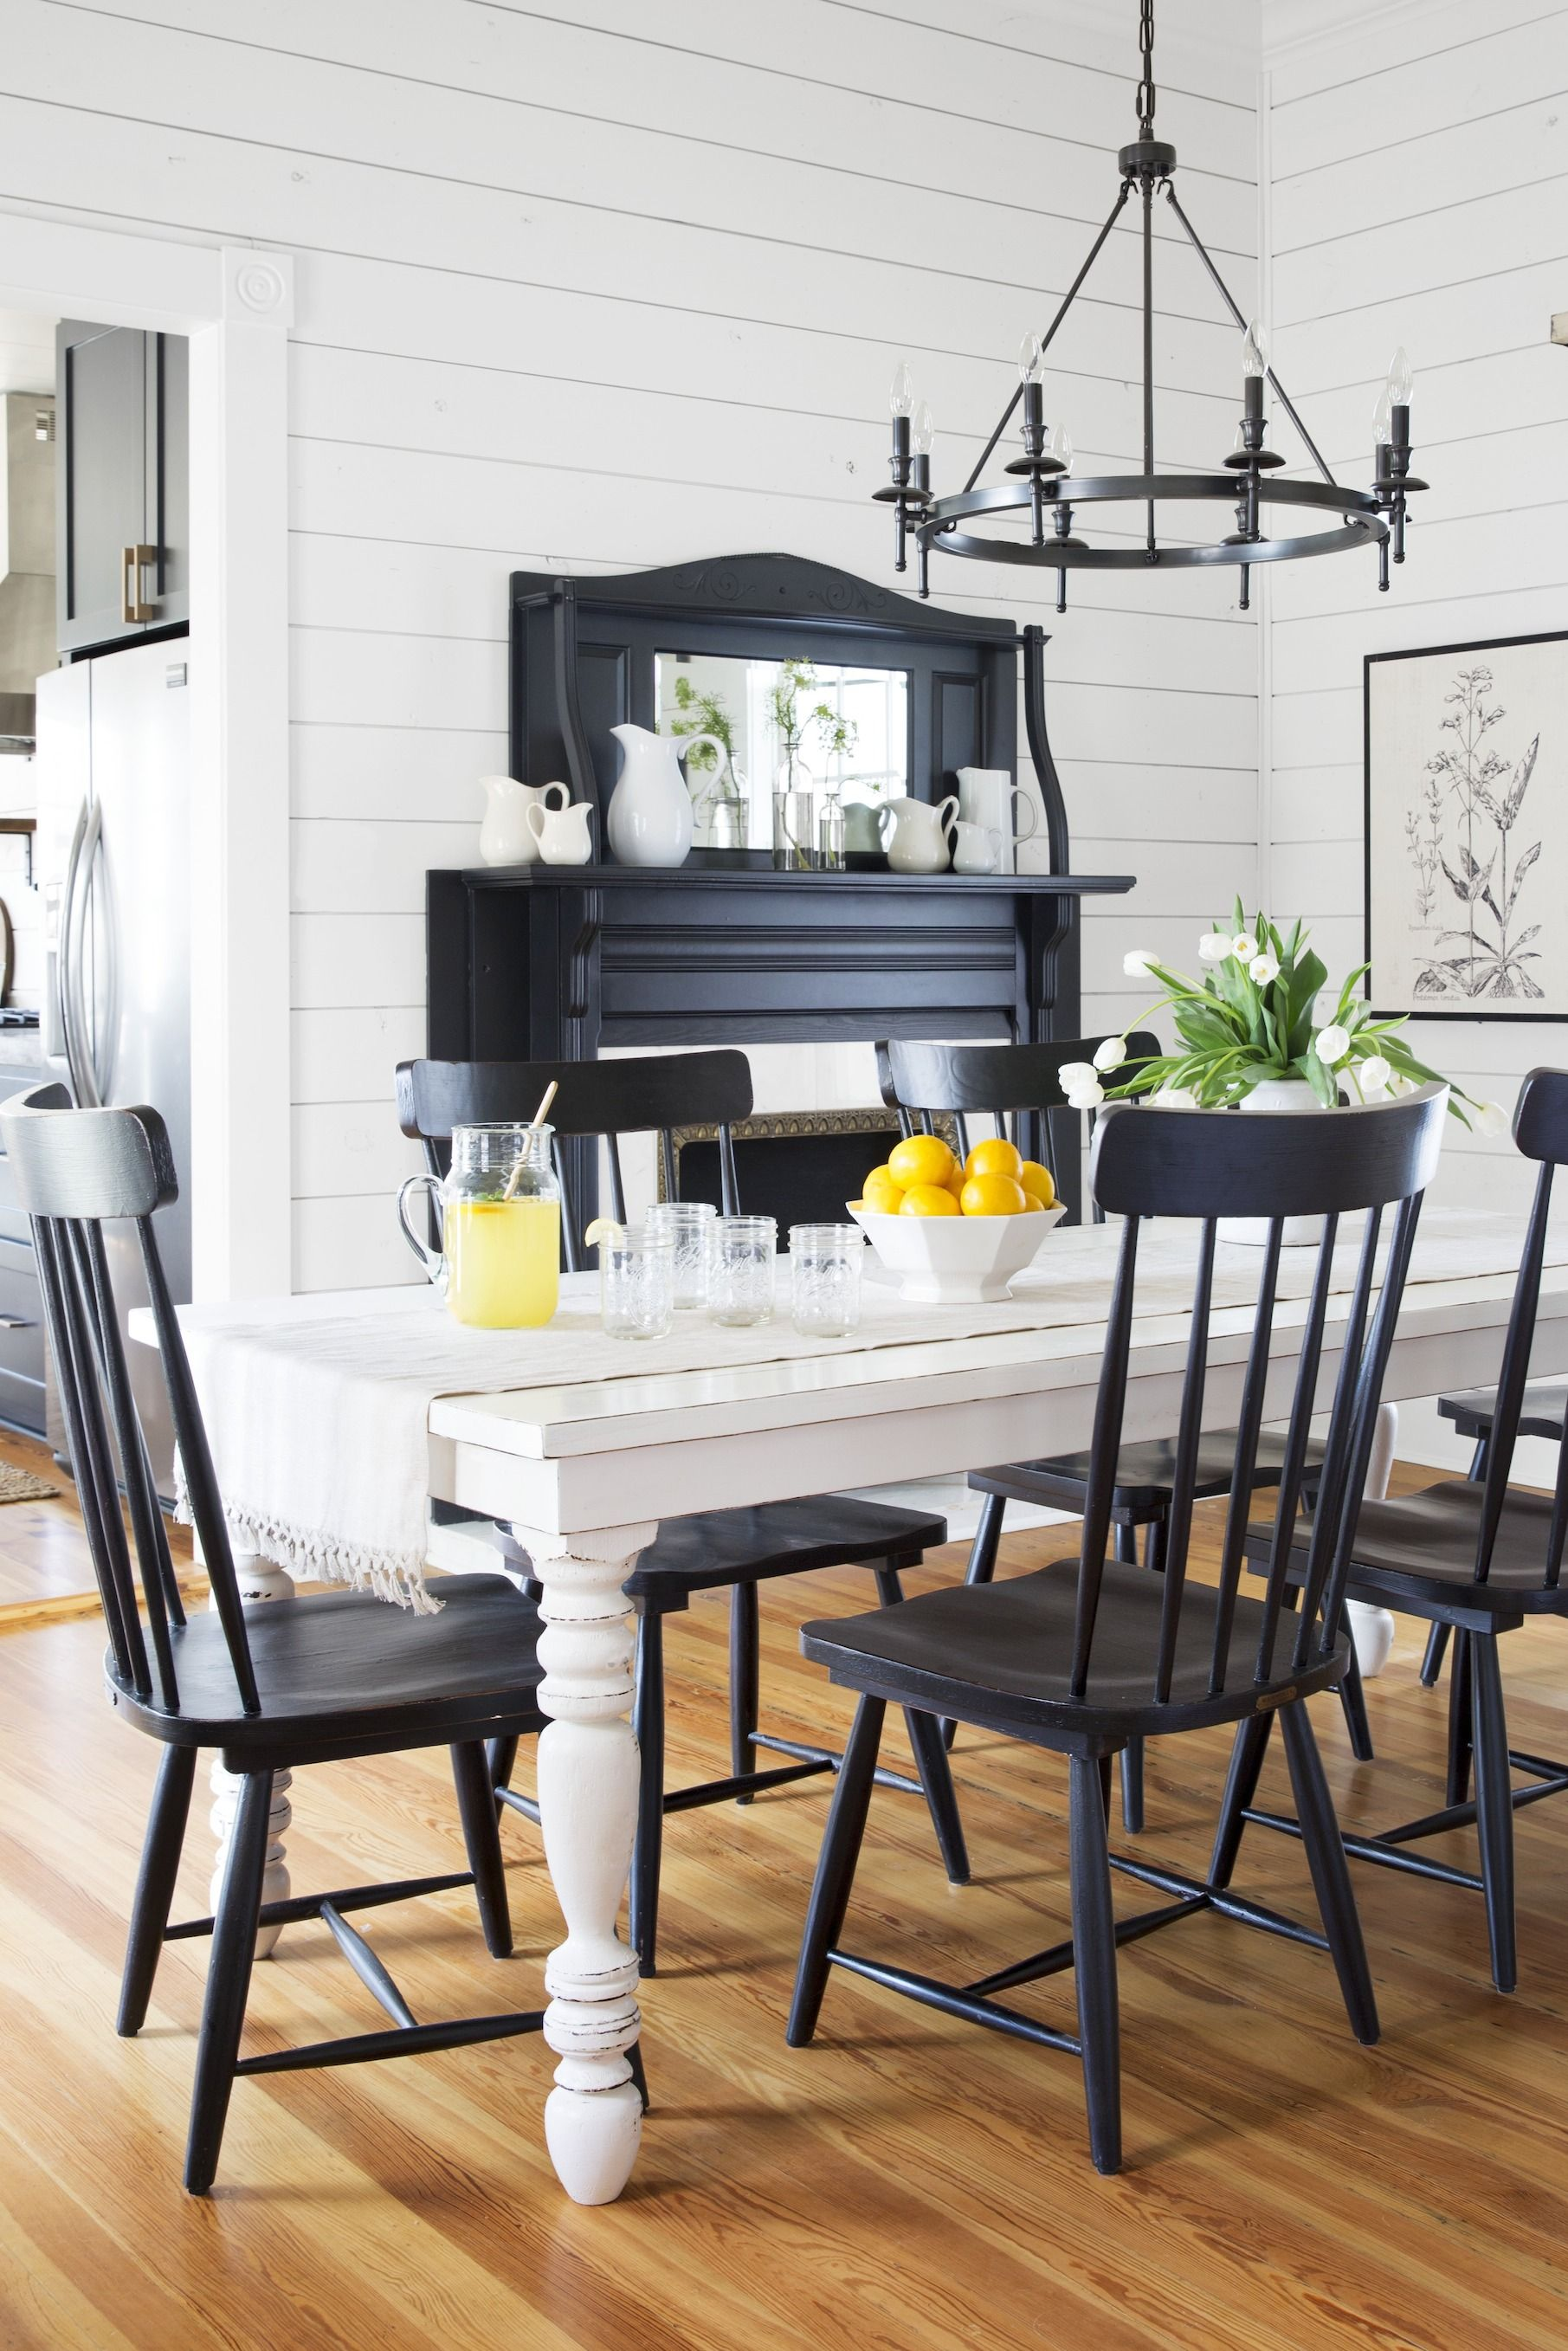 18 Best Dining Room Decorating Ideas - Pictures of Dining Room Decor